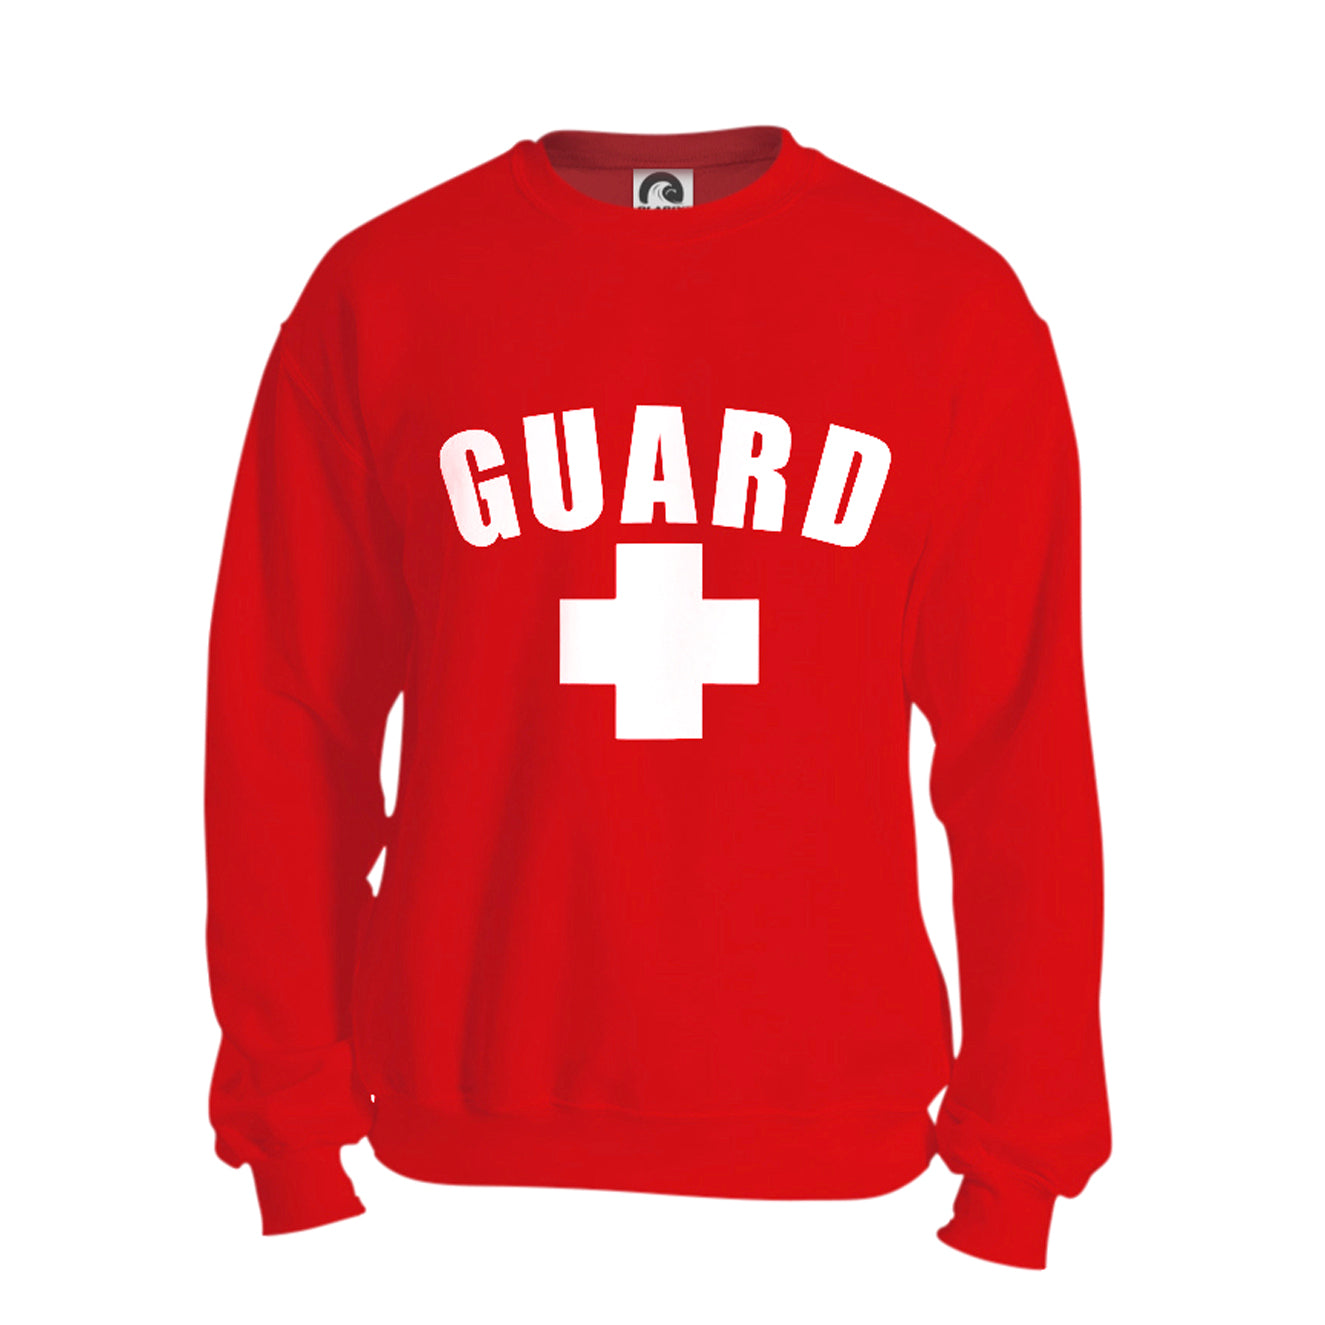 Lifeguard Crew Neck Sweatshirt - BLARIX